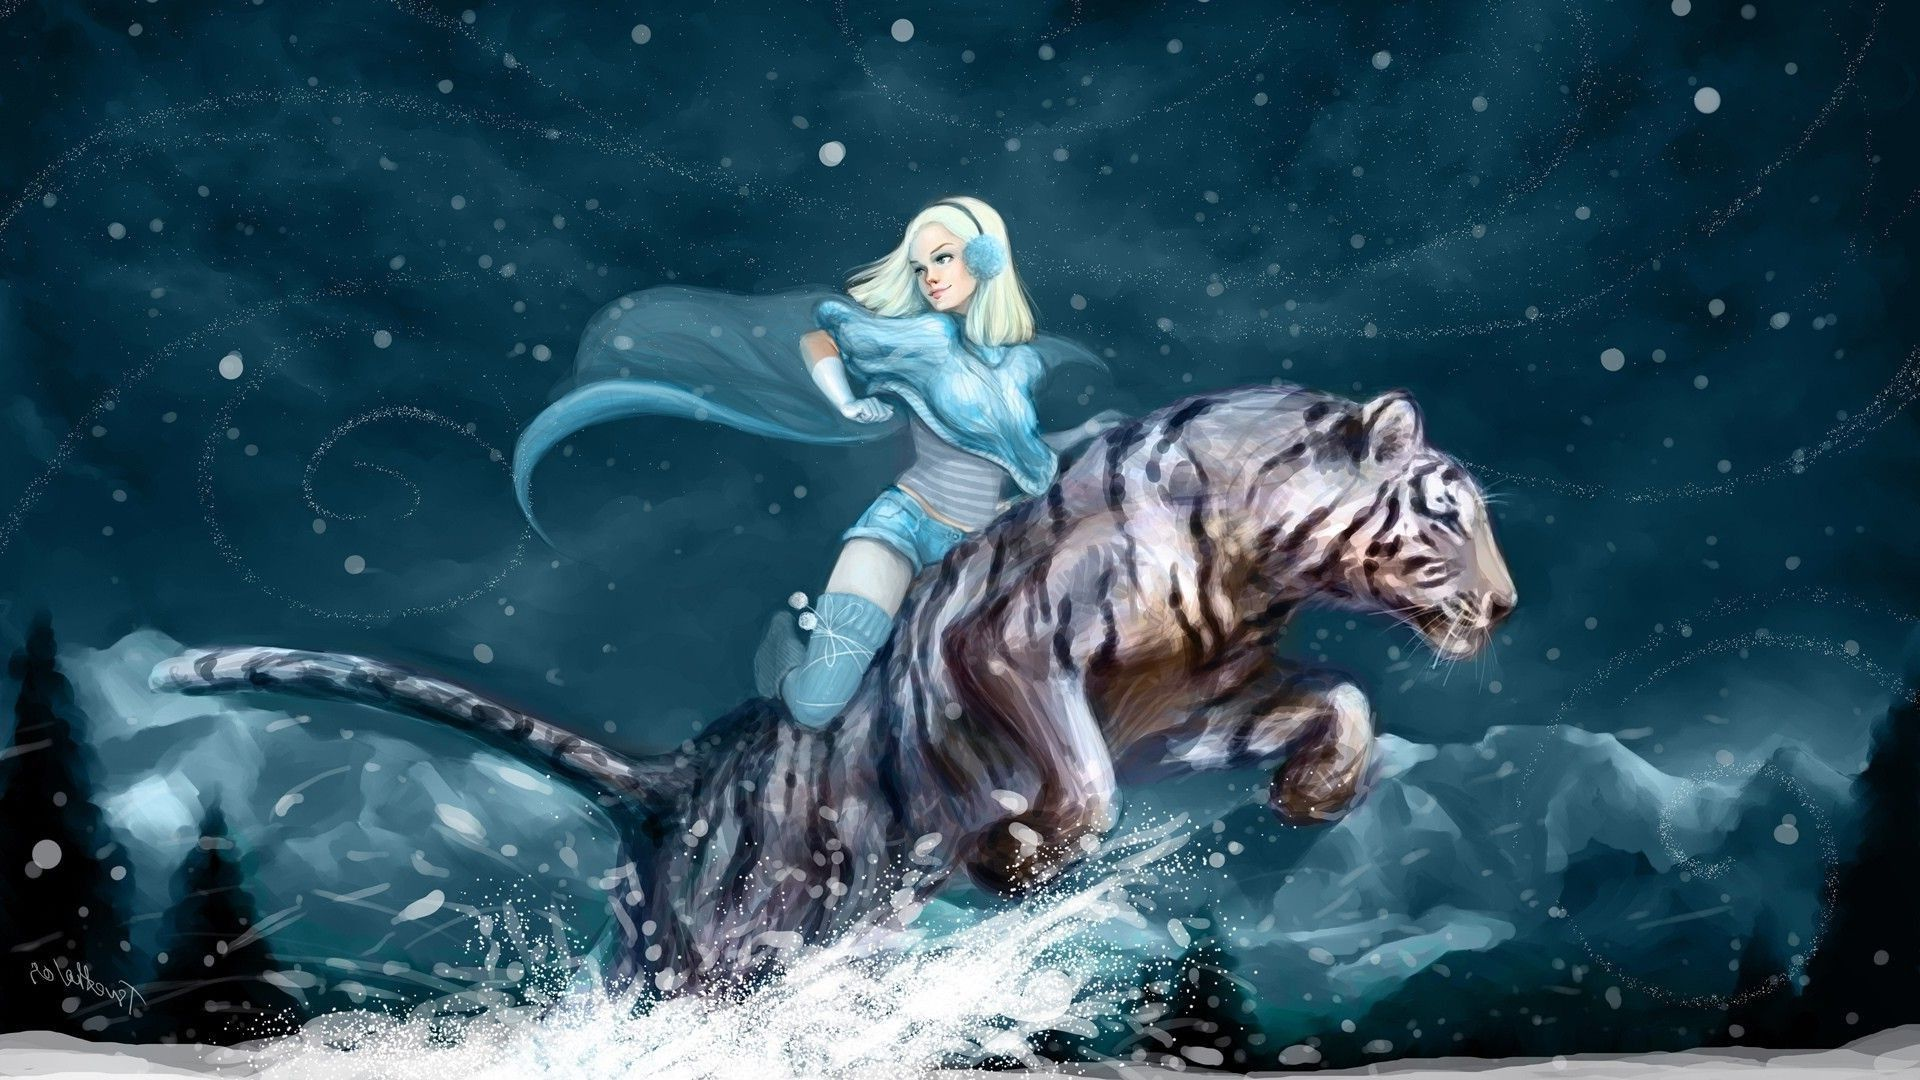 Fantasy art tiger women snow wallpaper fotografias imagenes y fantasy art tiger women snow wallpaper thecheapjerseys Gallery